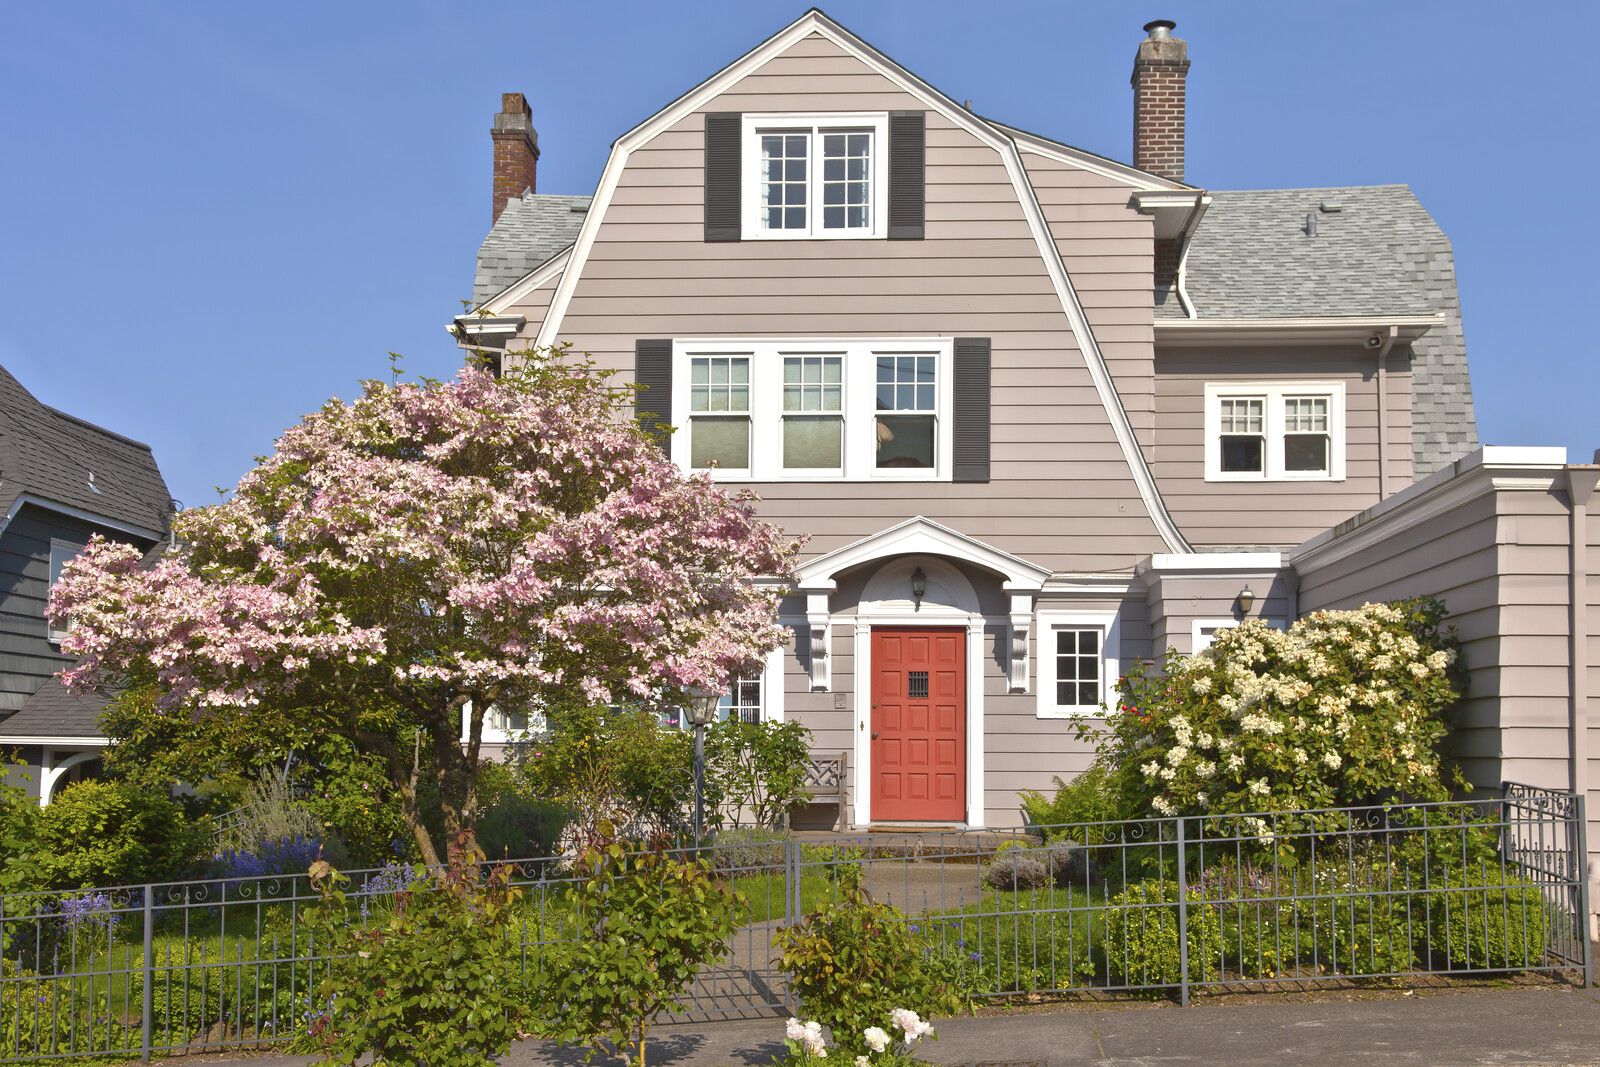 Residential barn style home with black iron fence and red door.  Shrubs and crab apple tree in the front yard